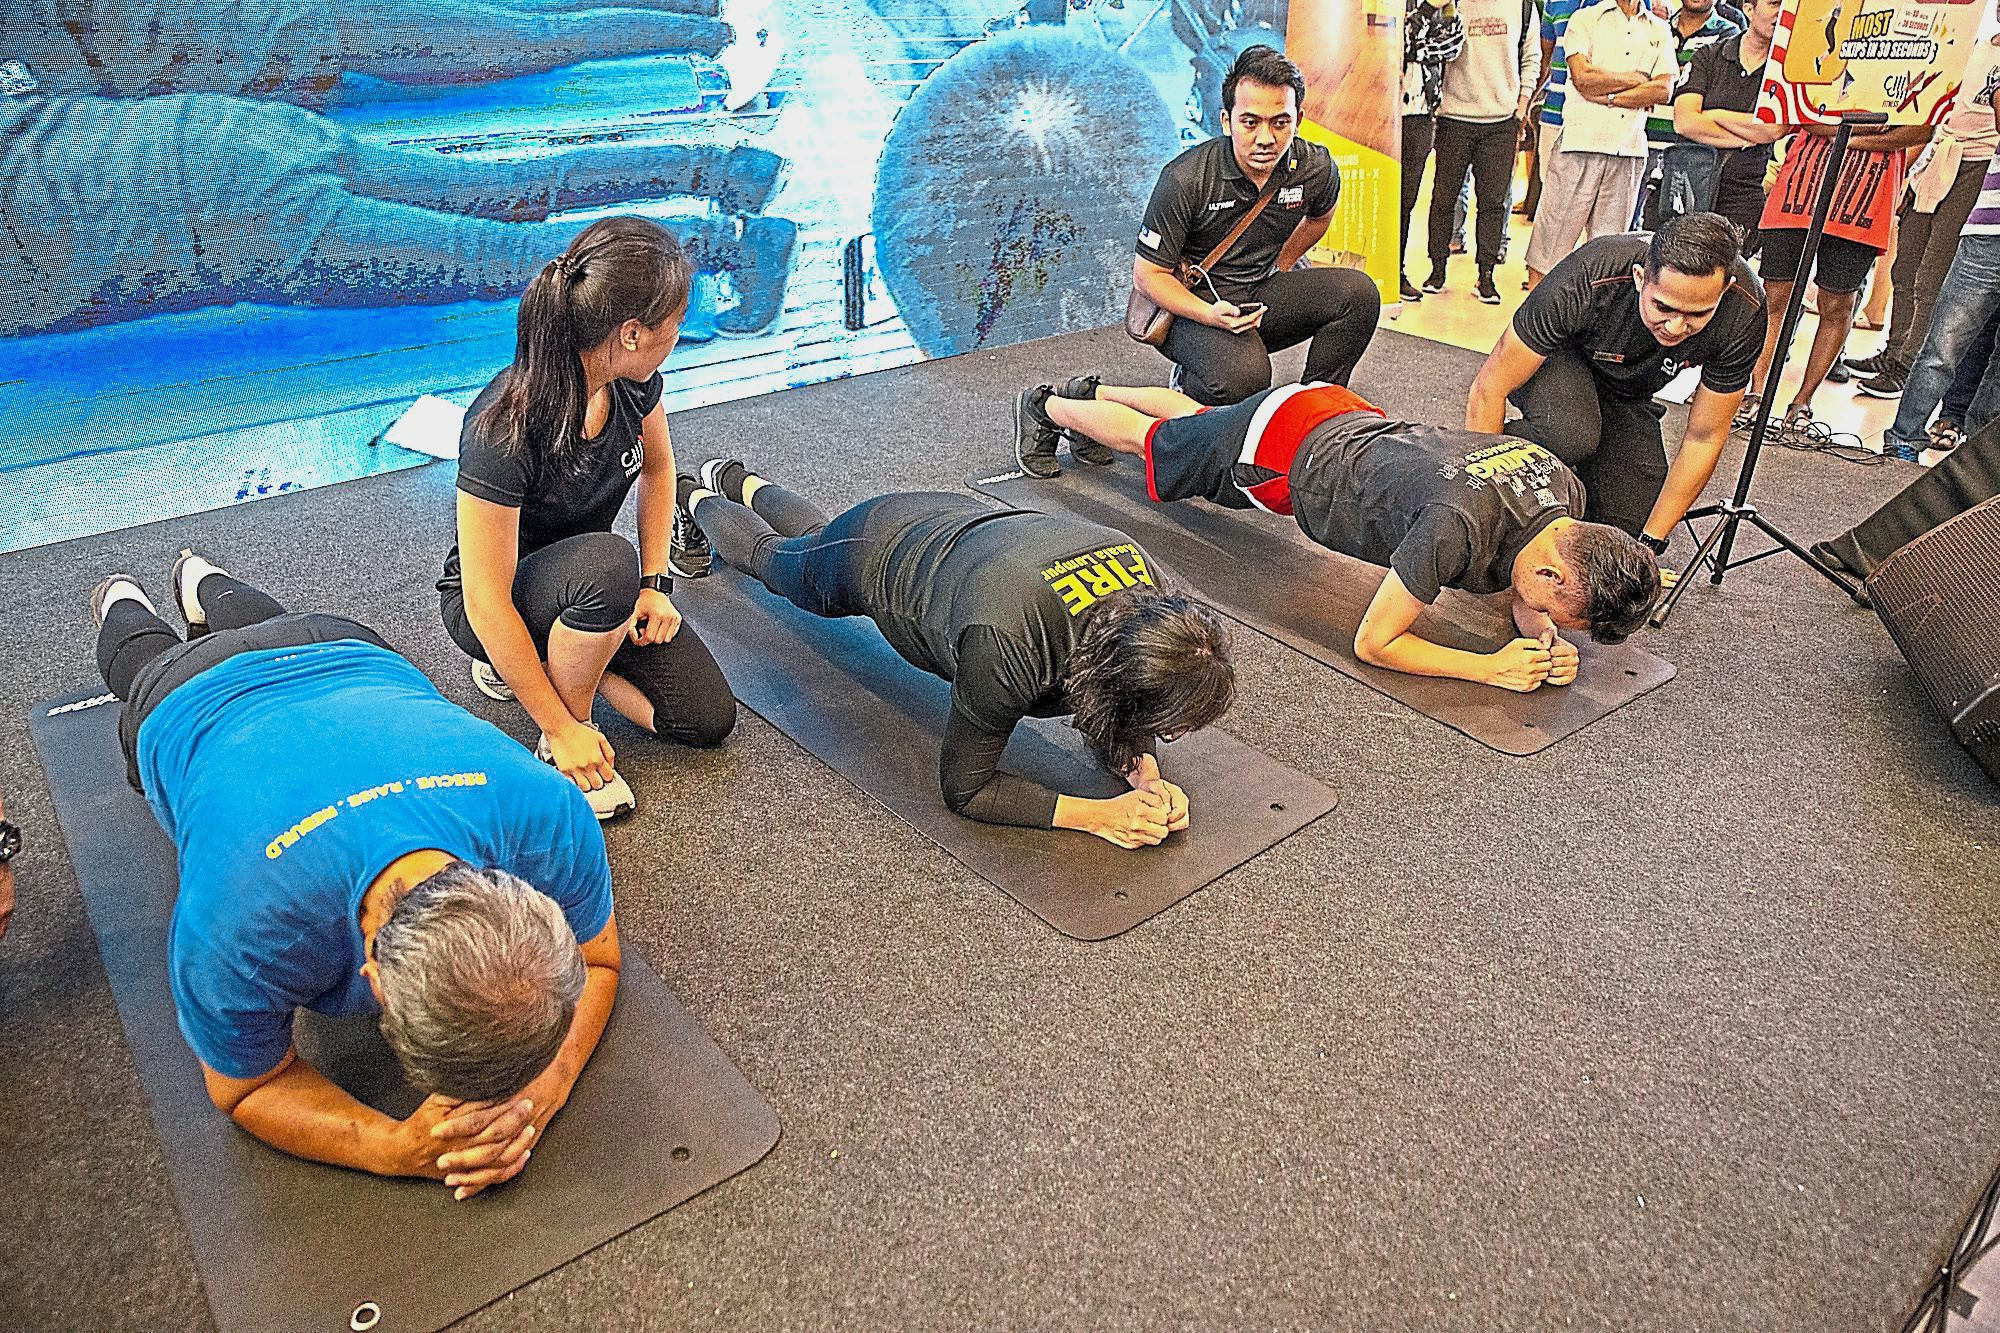 Participants in the Longest Duration Plank challenge trying to break the one-hour mark. Despite their attempts, none could break the record.